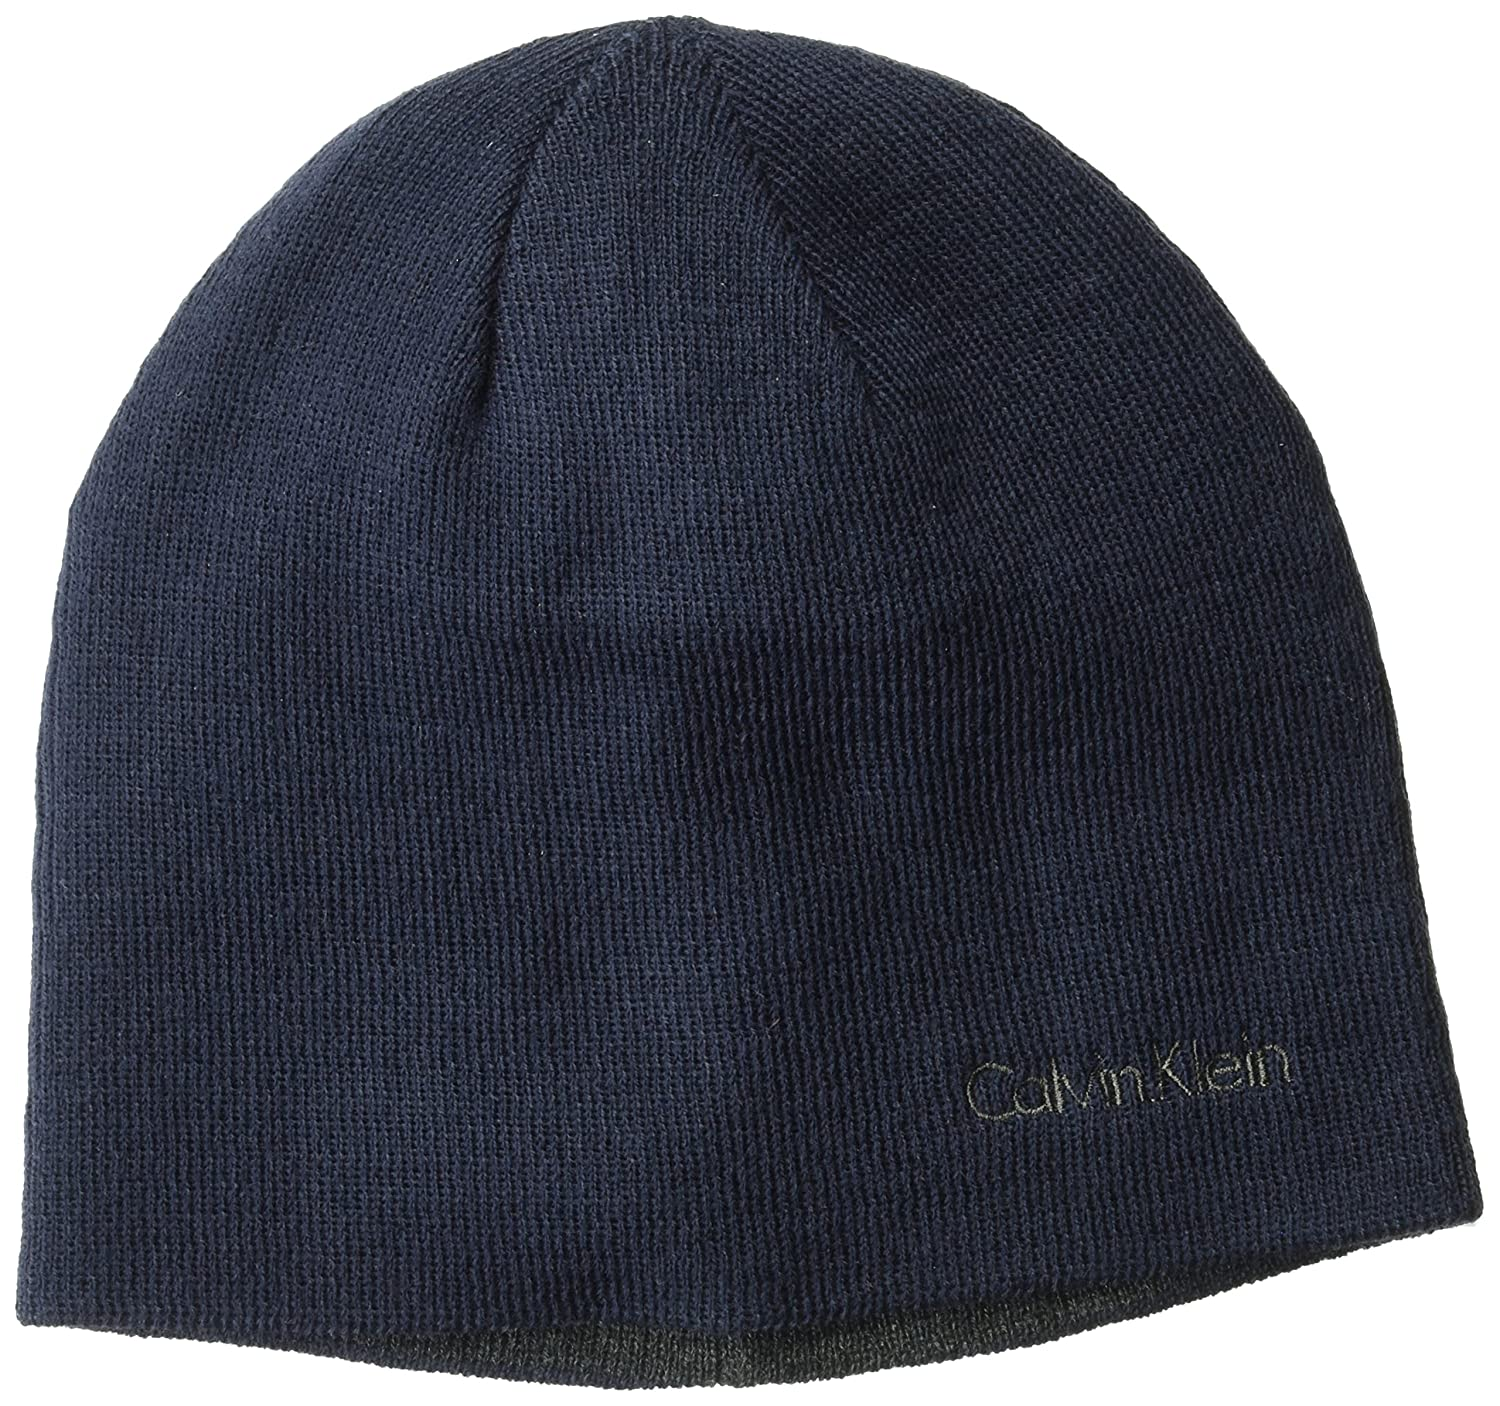 Calvin Klein Unisex Reversible Solid Winter Hat, Navy, One Size HCKHT293